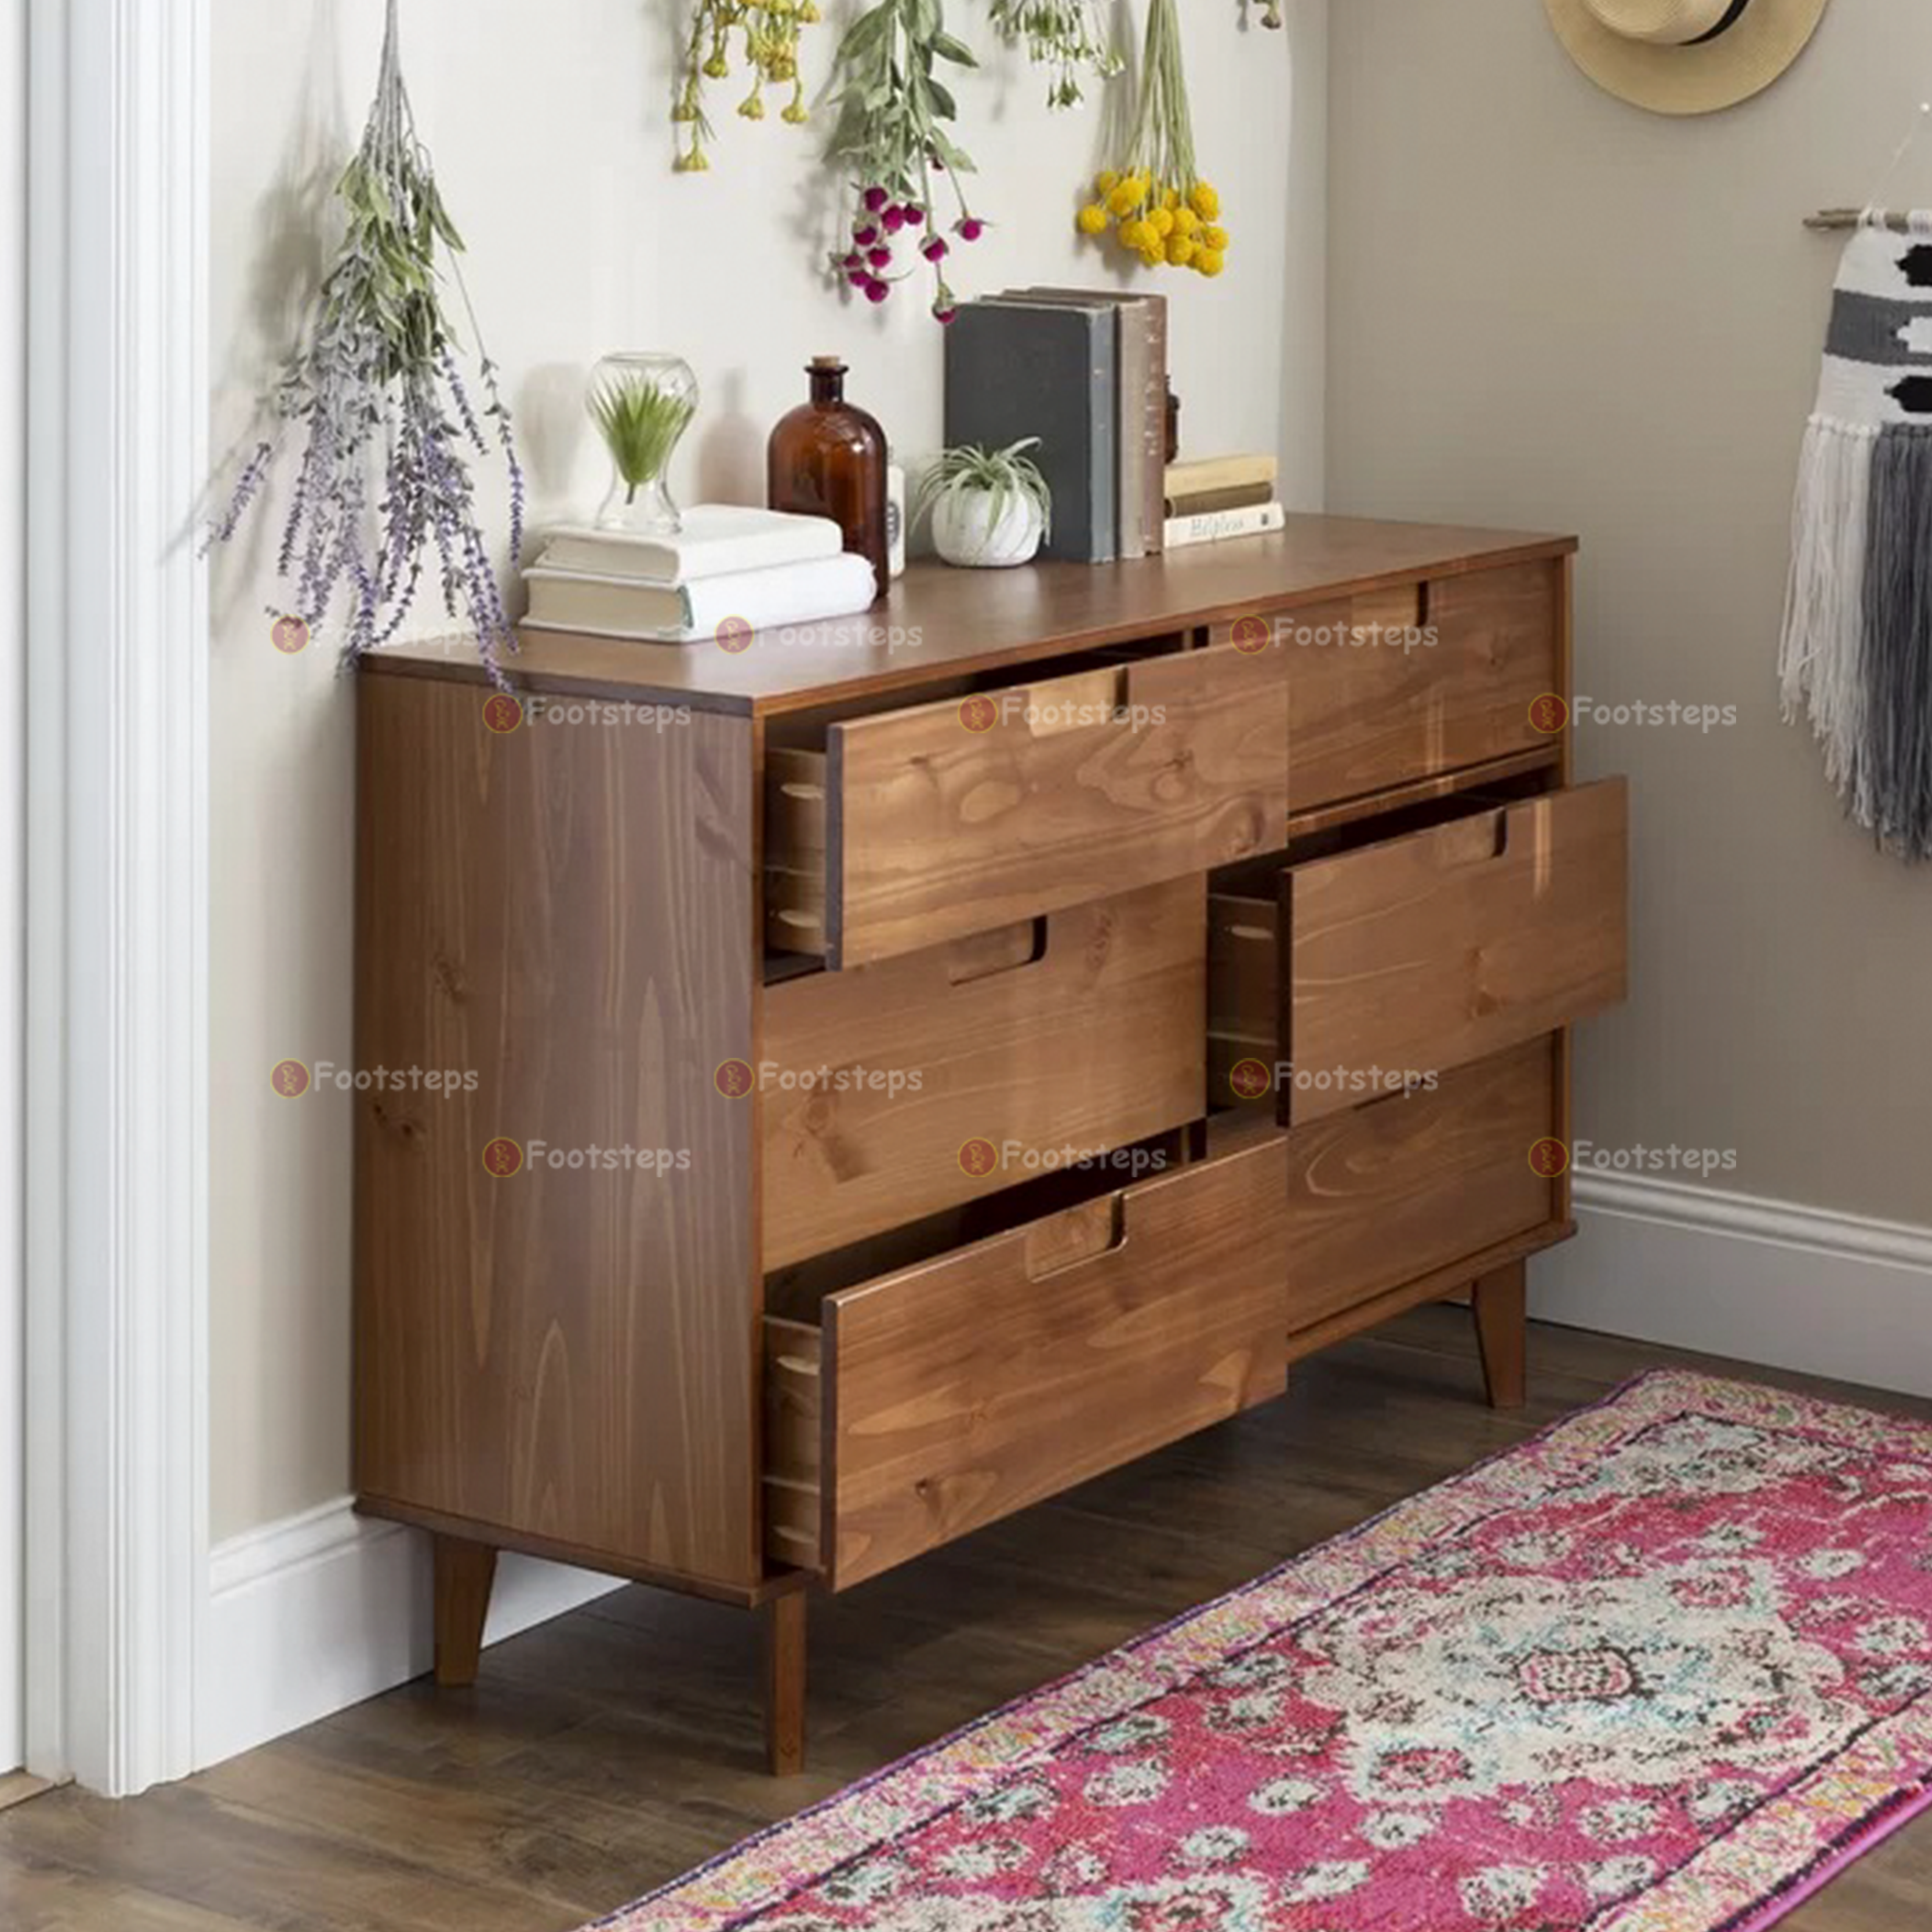 Dressers & Chests1